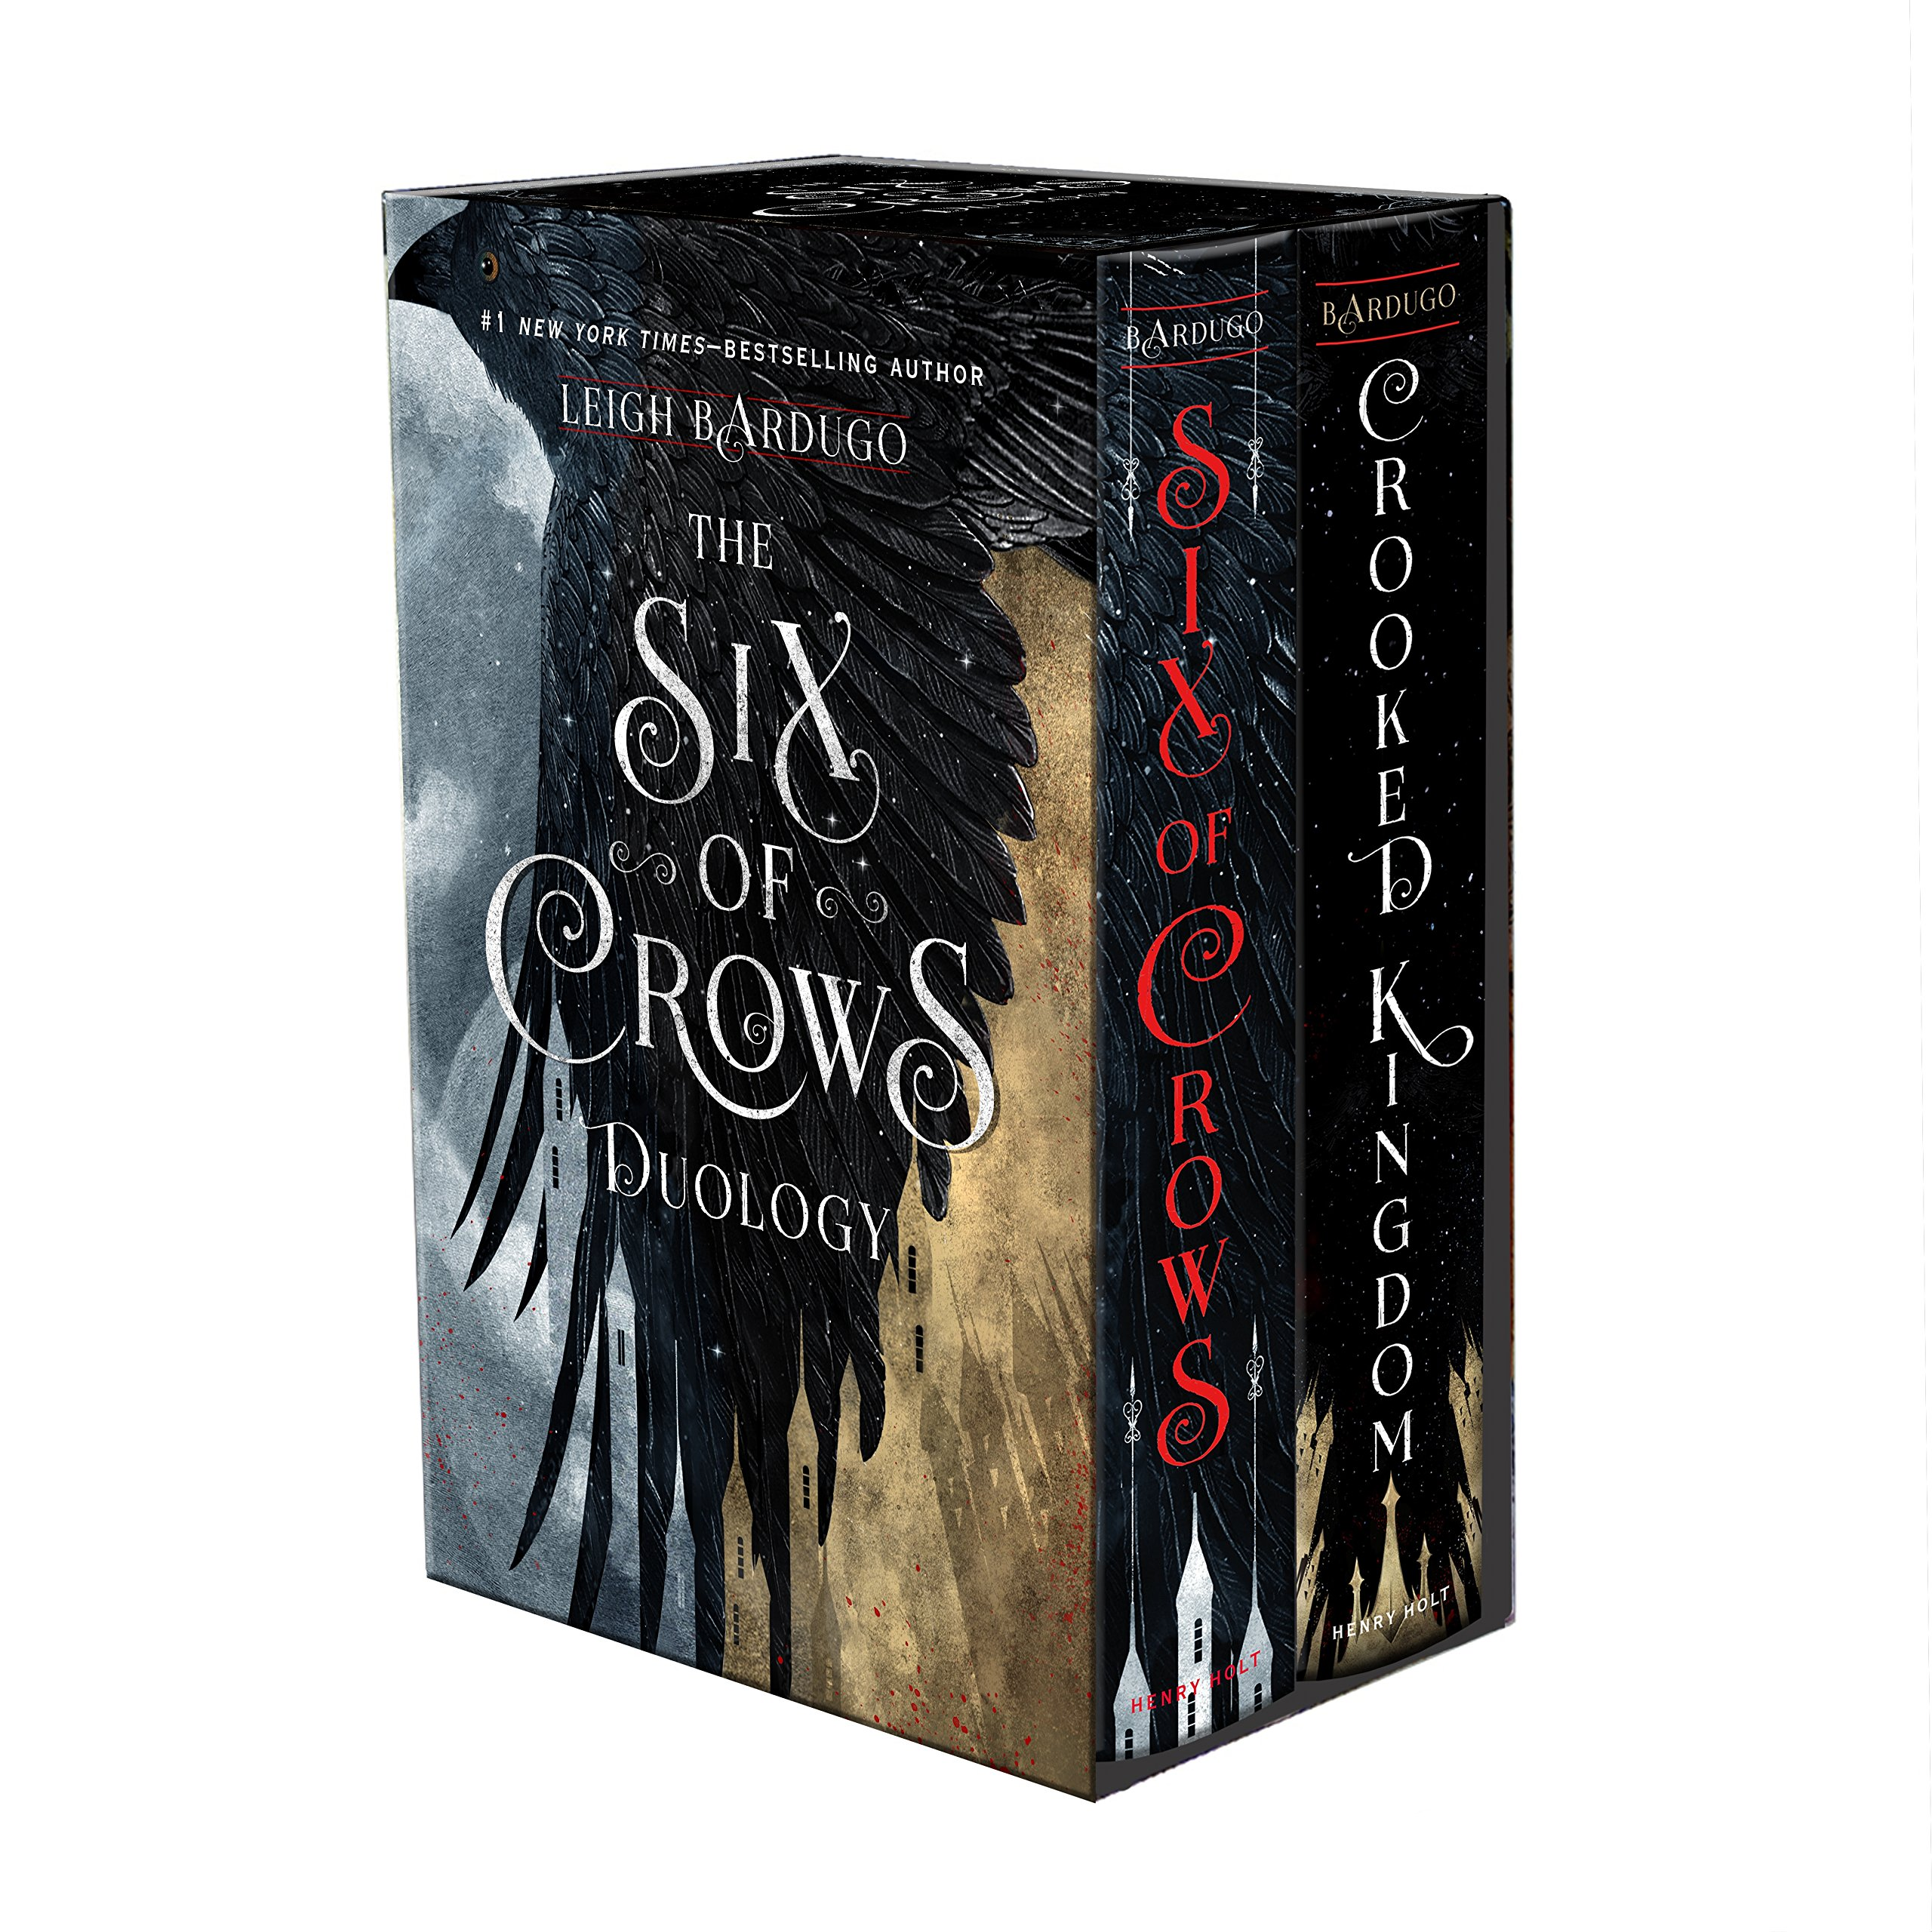 Afbeeldingsresultaat voor six of crows books